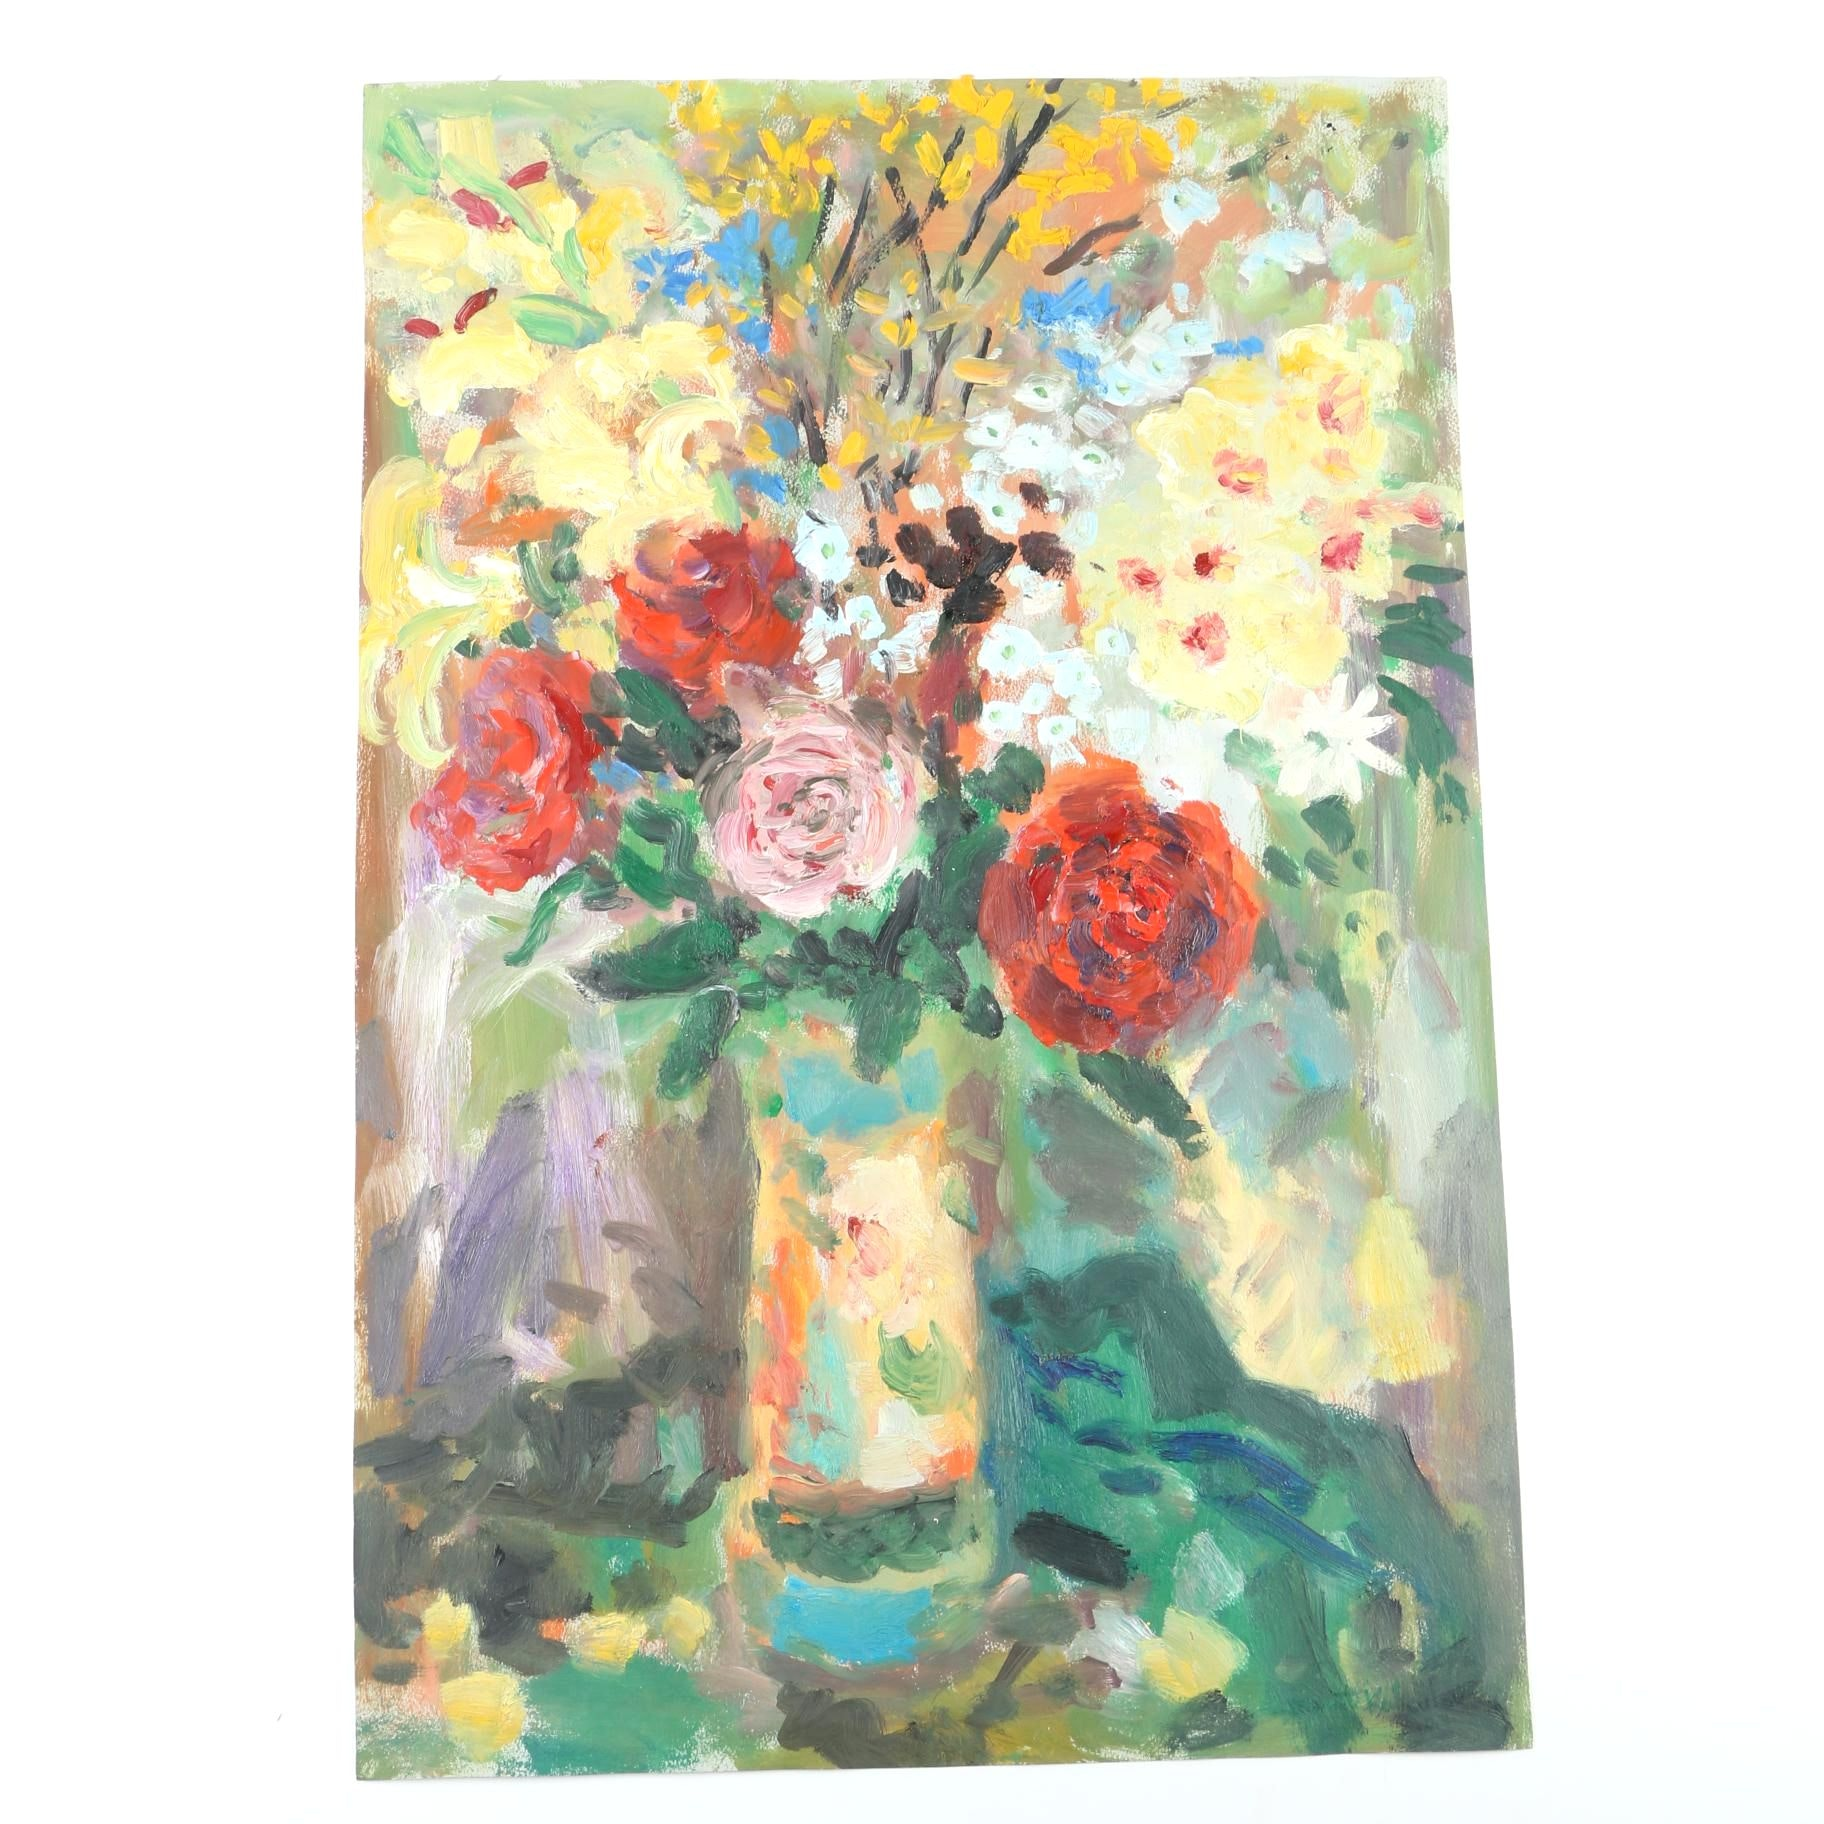 Acrylic Painting on Paper of Vase of Flowers